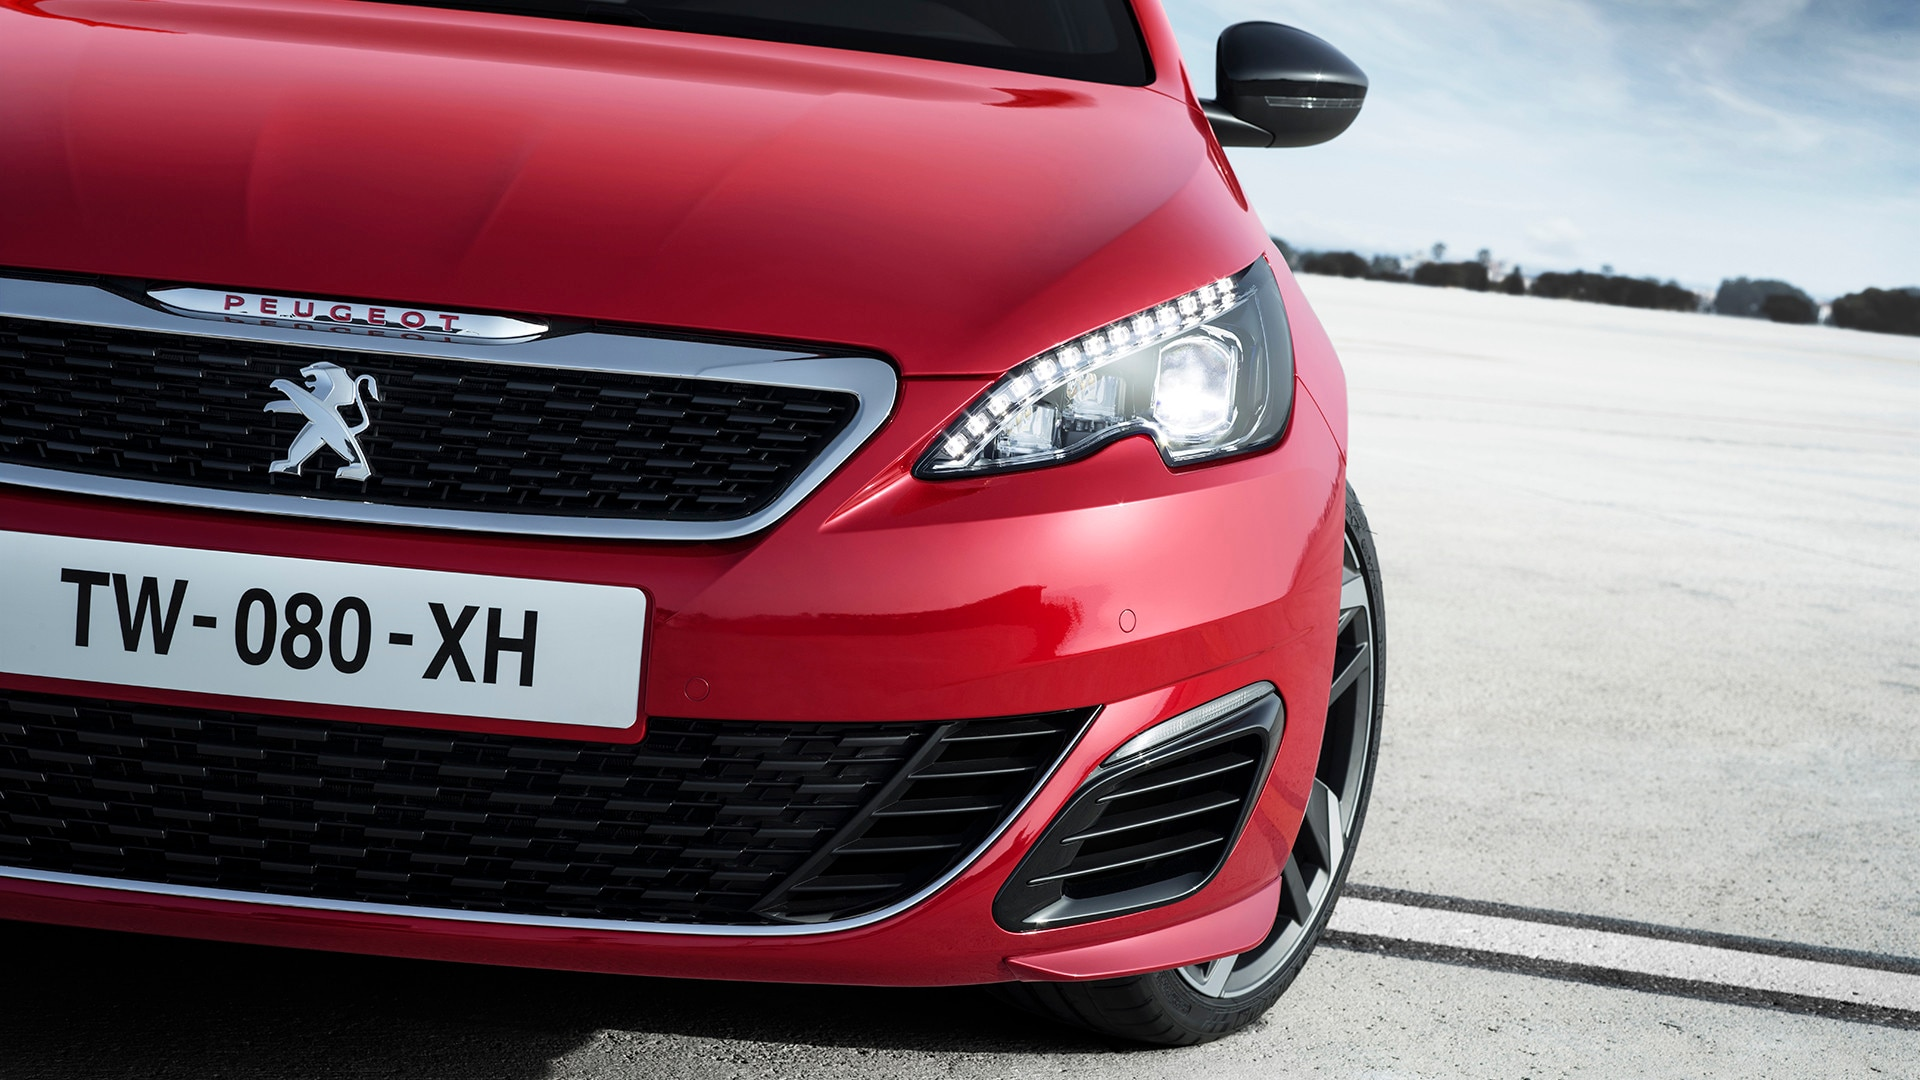 peugeot 308 gti new car showroom | hot hatch sports car | test drive